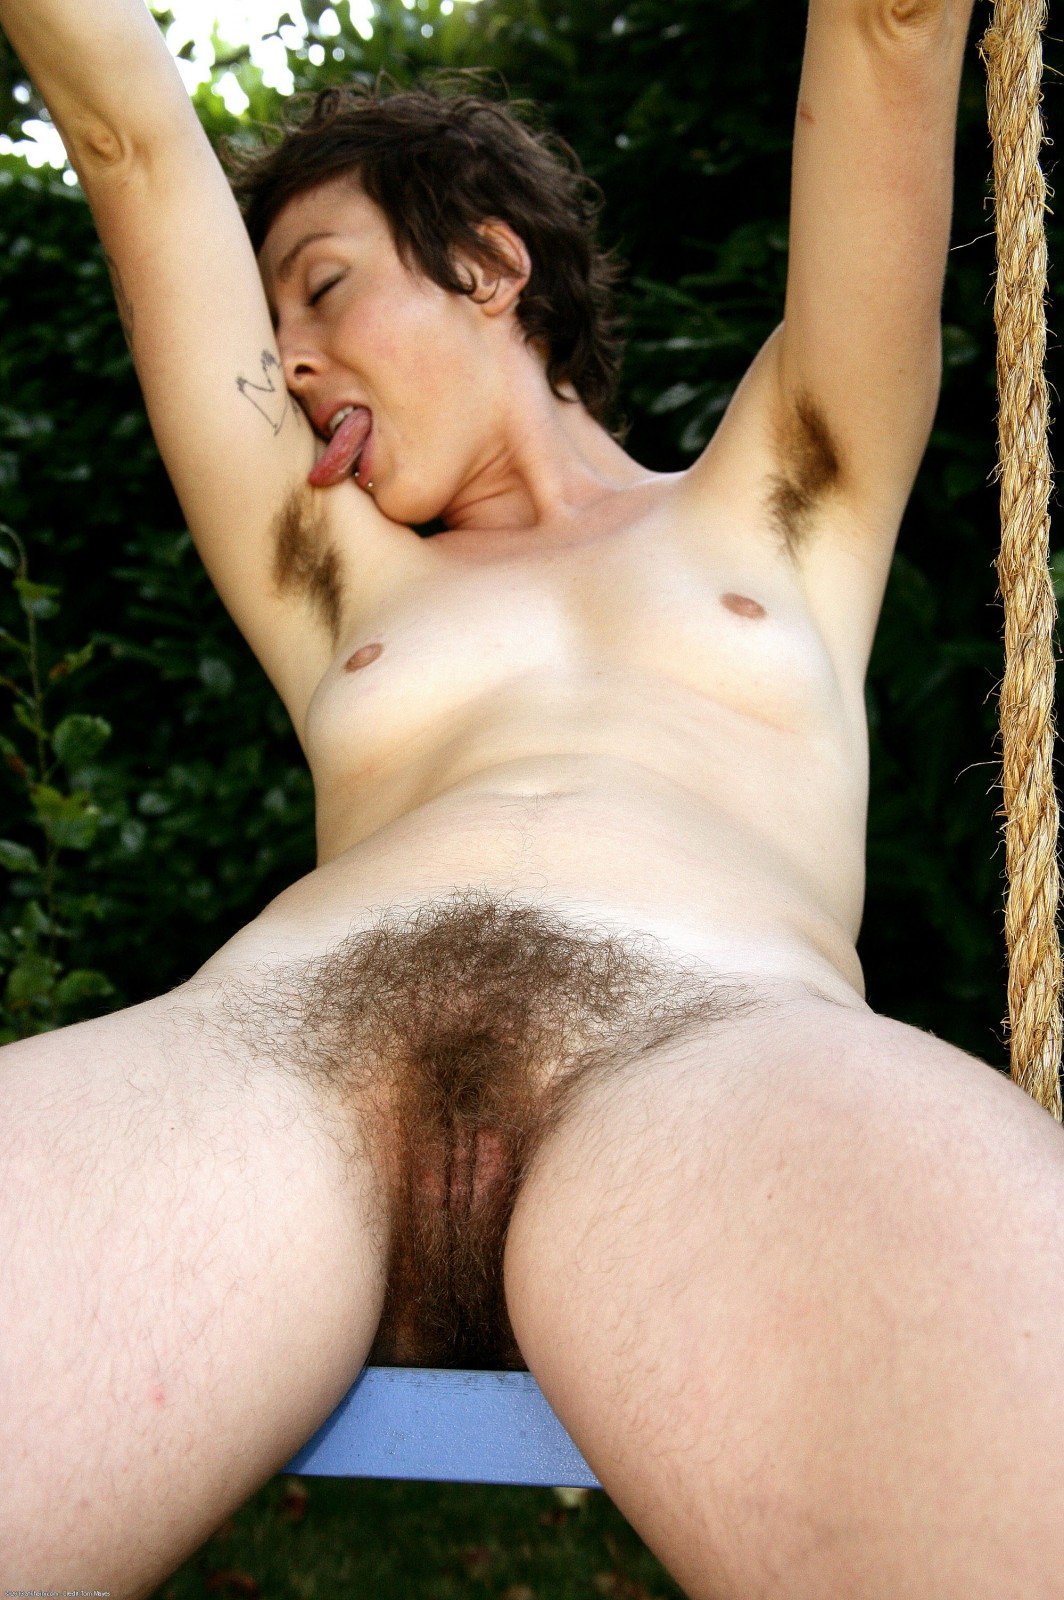 hairy armpits of ladies